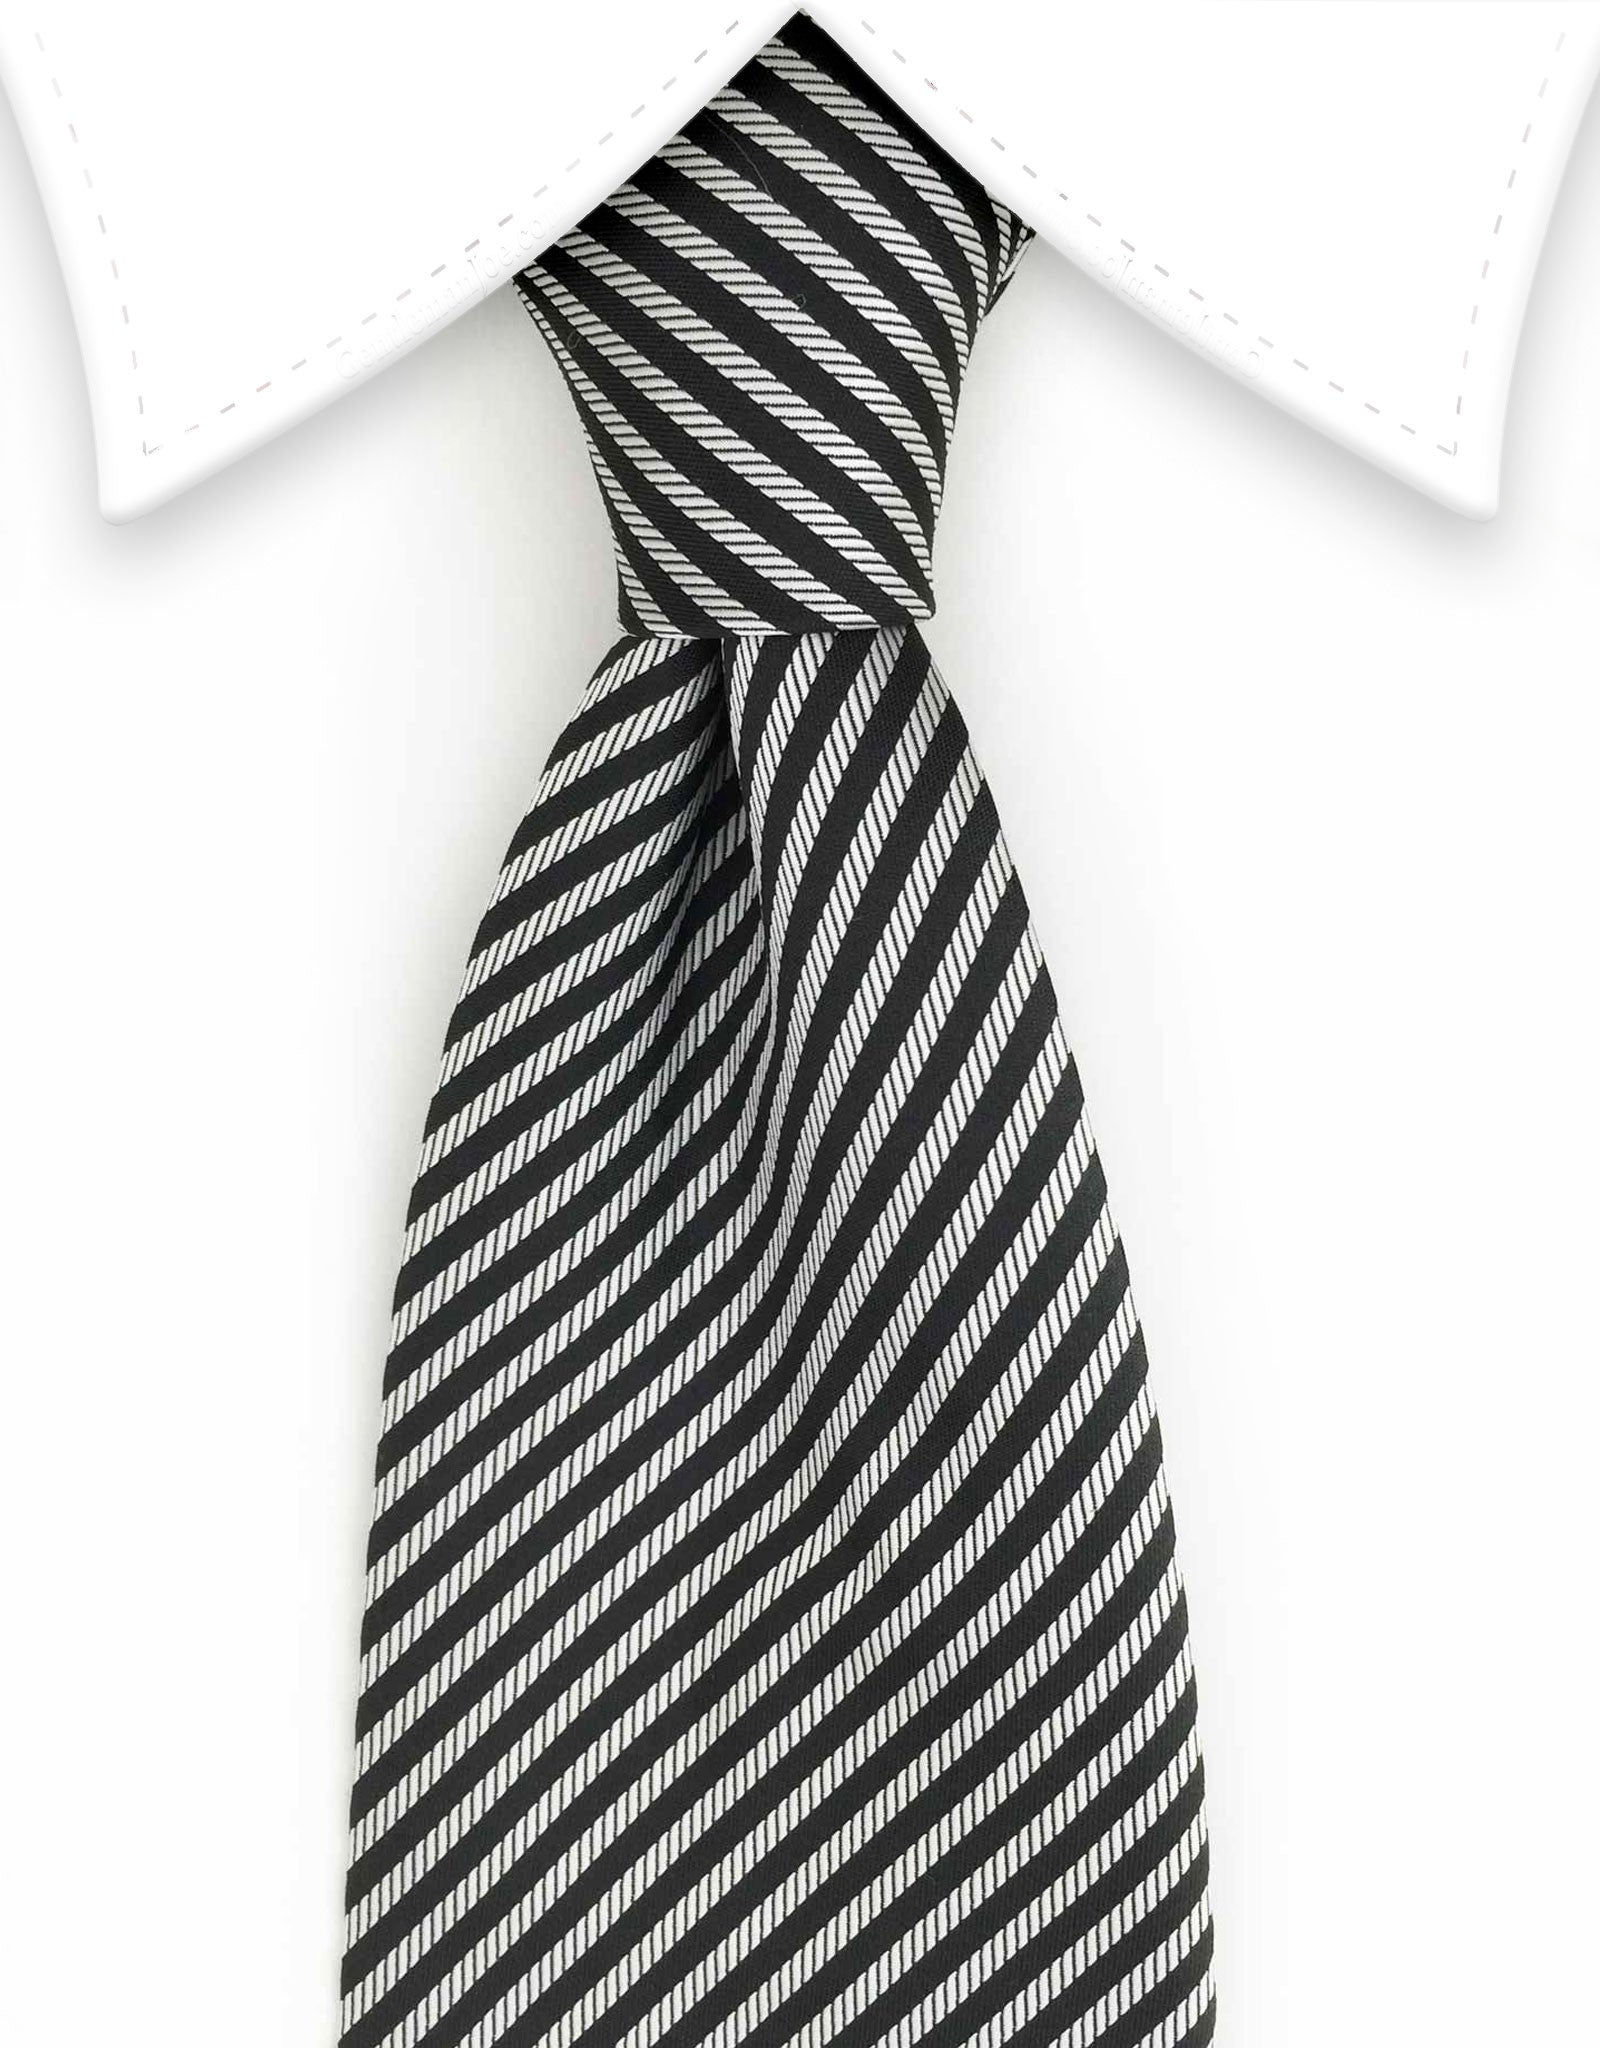 black and silver pencil striped necktie